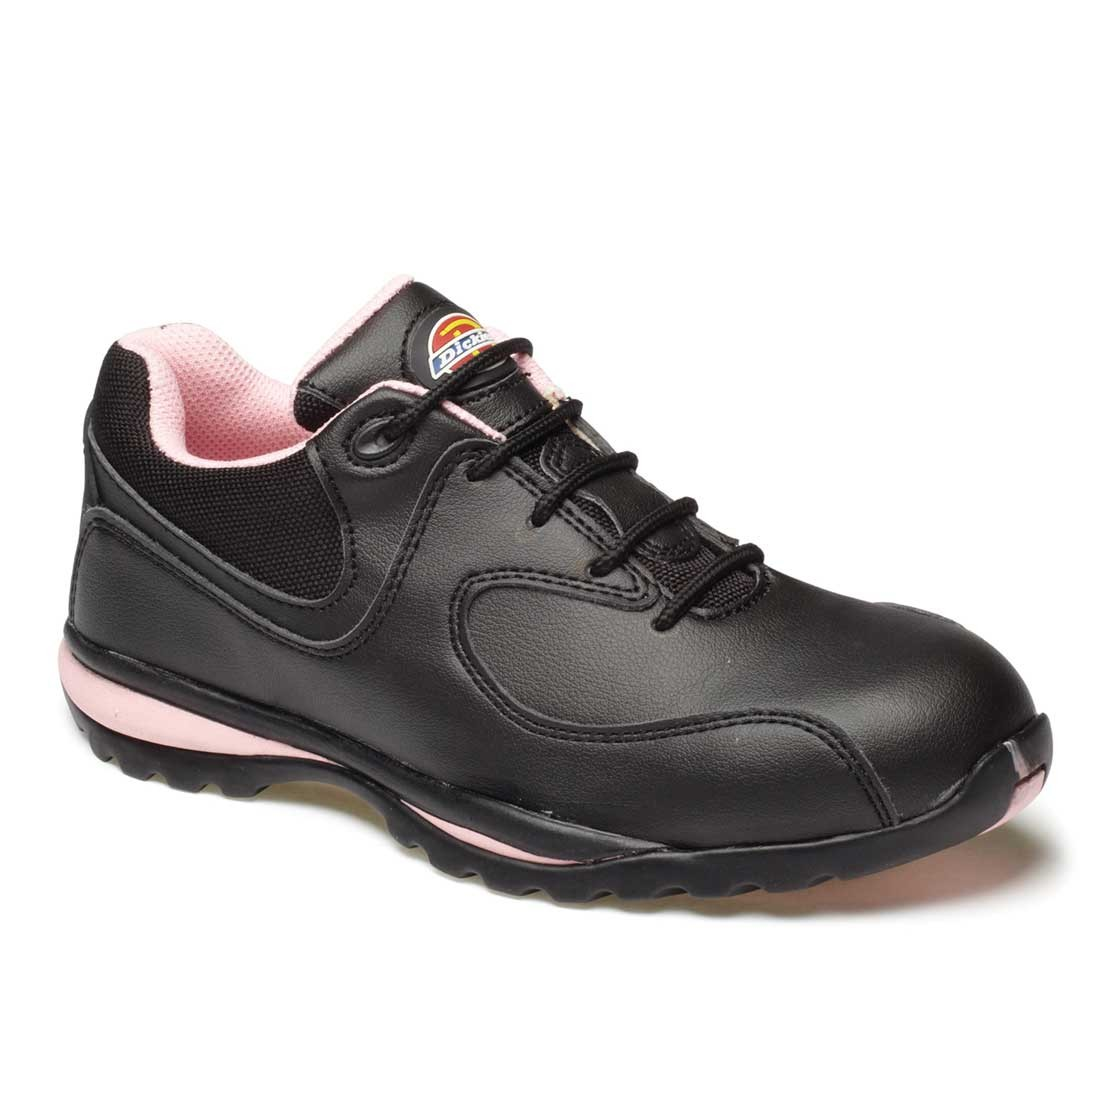 0cc4f755a7c Ladies Safety Trainers and Sneakers for Women from UK Safety Footwear